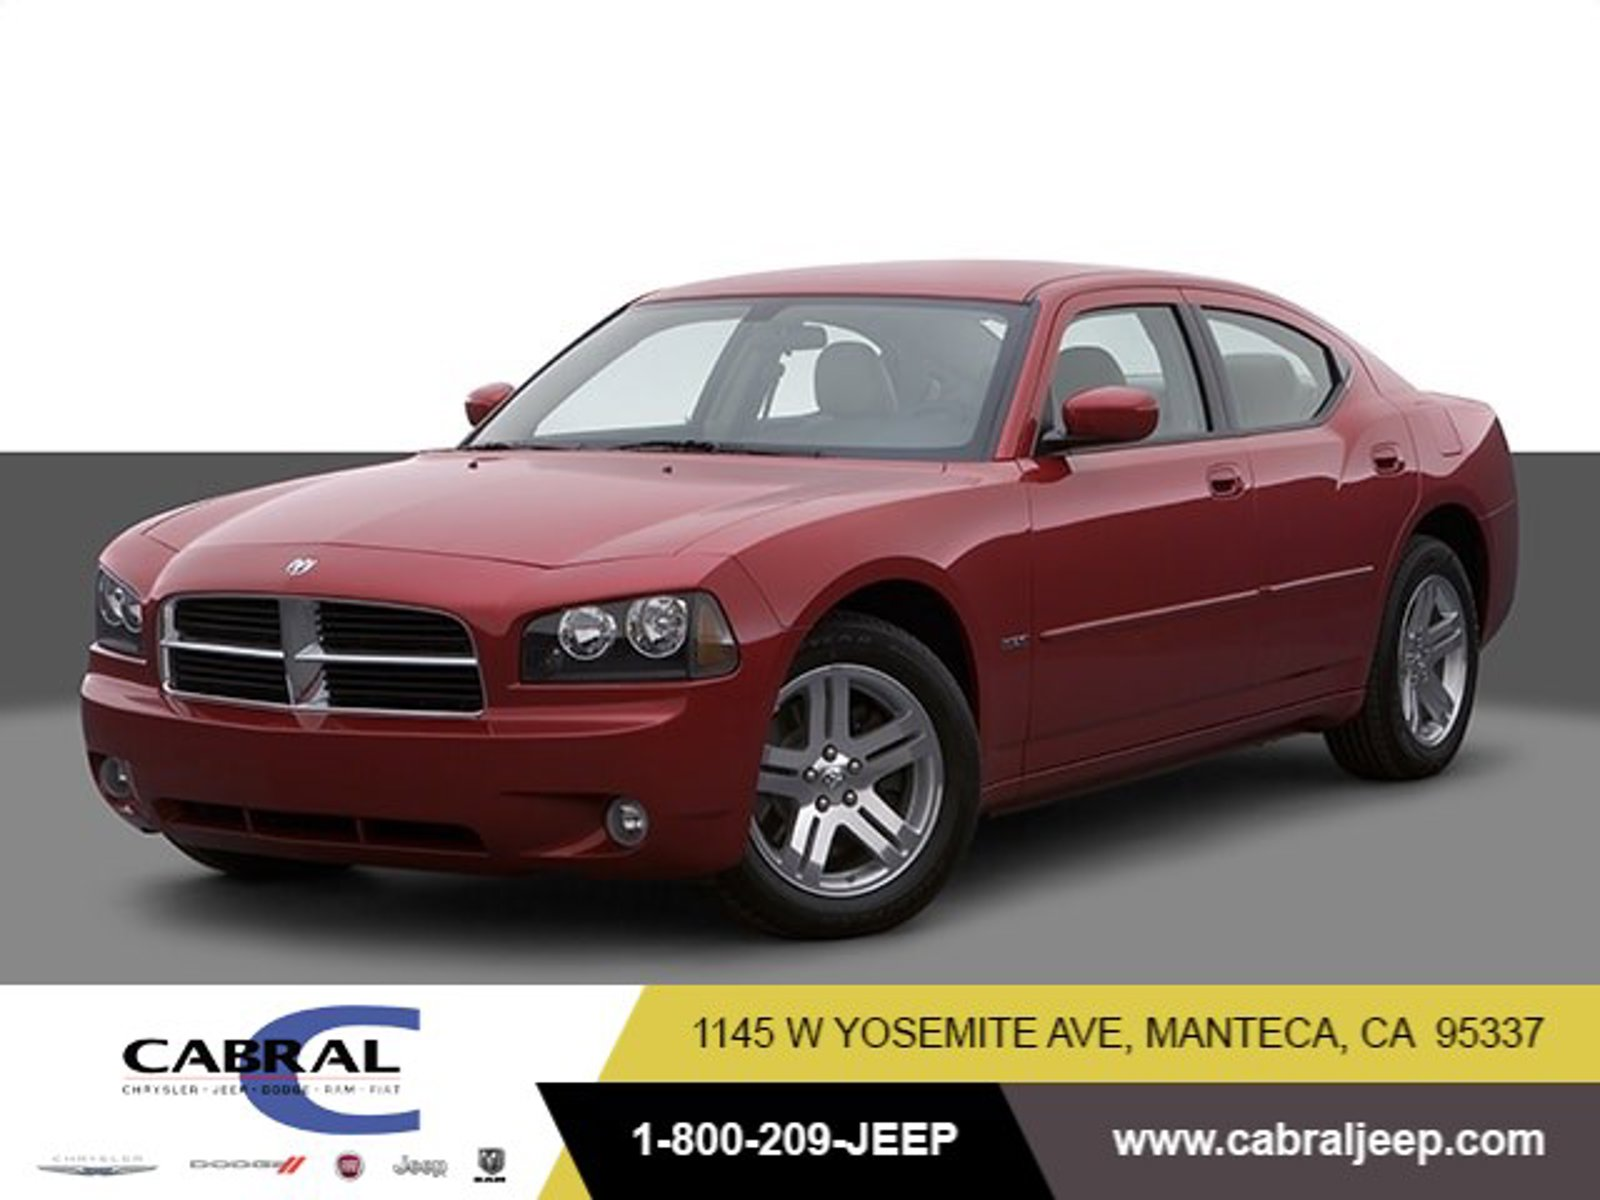 2007 Dodge Charger R/T 4dr Sdn 5-Spd Auto R/T RWD Gas V8 5.7L/345 [3]